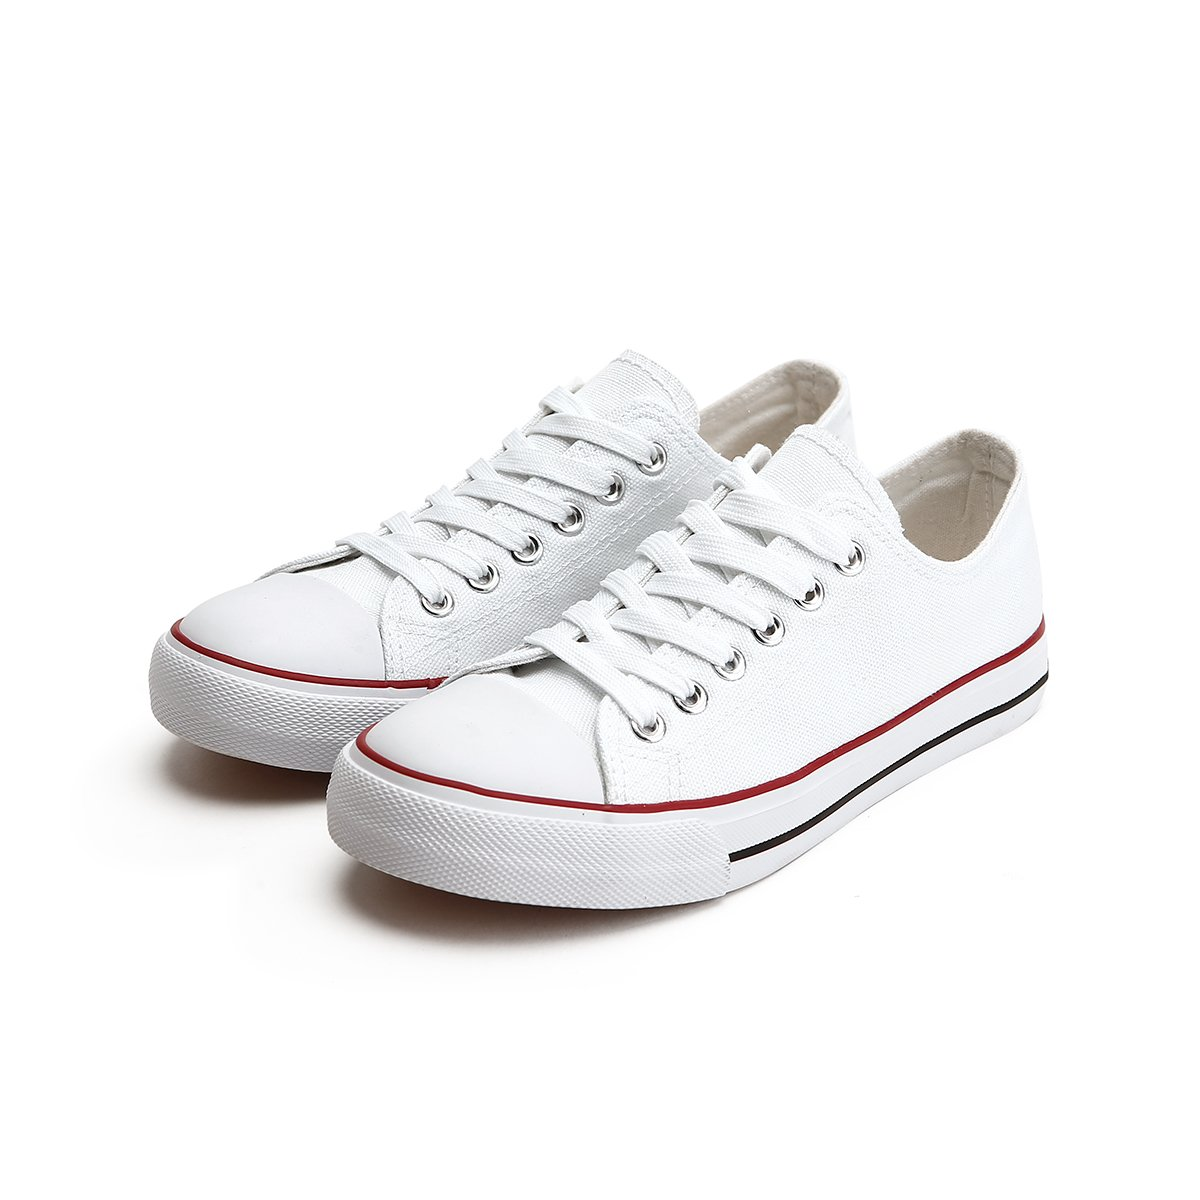 ZGR Low Cut Canvas Sneaker